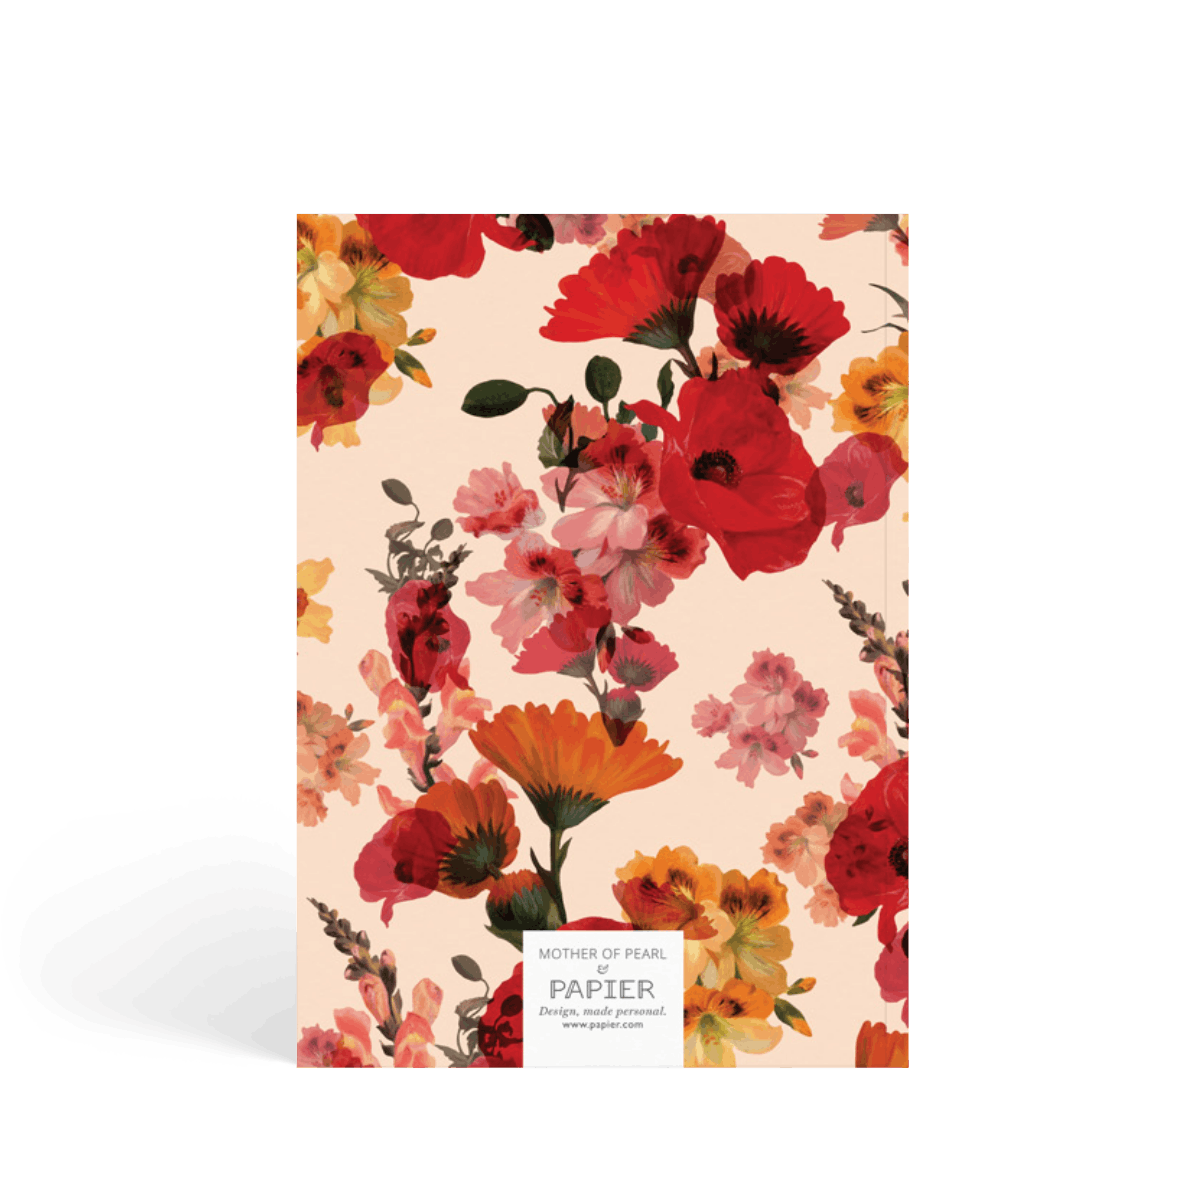 Https%3a%2f%2fwww.papier.com%2fproduct image%2f55514%2f5%2fcordelia floral 13334 back 1570268772.png?ixlib=rb 1.1